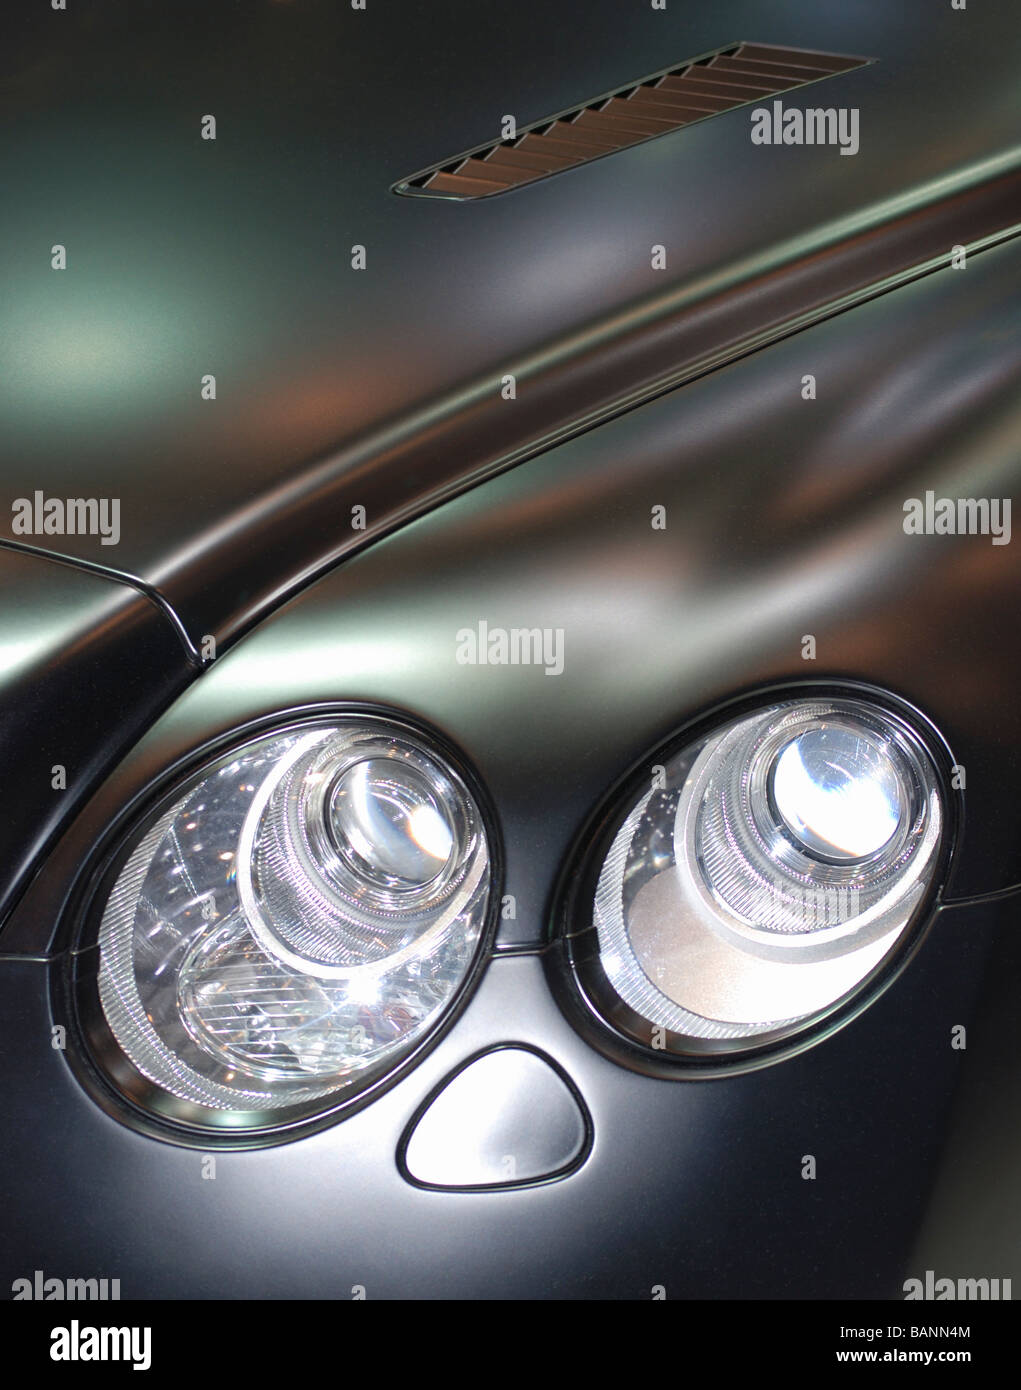 Close up of a stylish modern sports car front twin headlamps - Stock Image